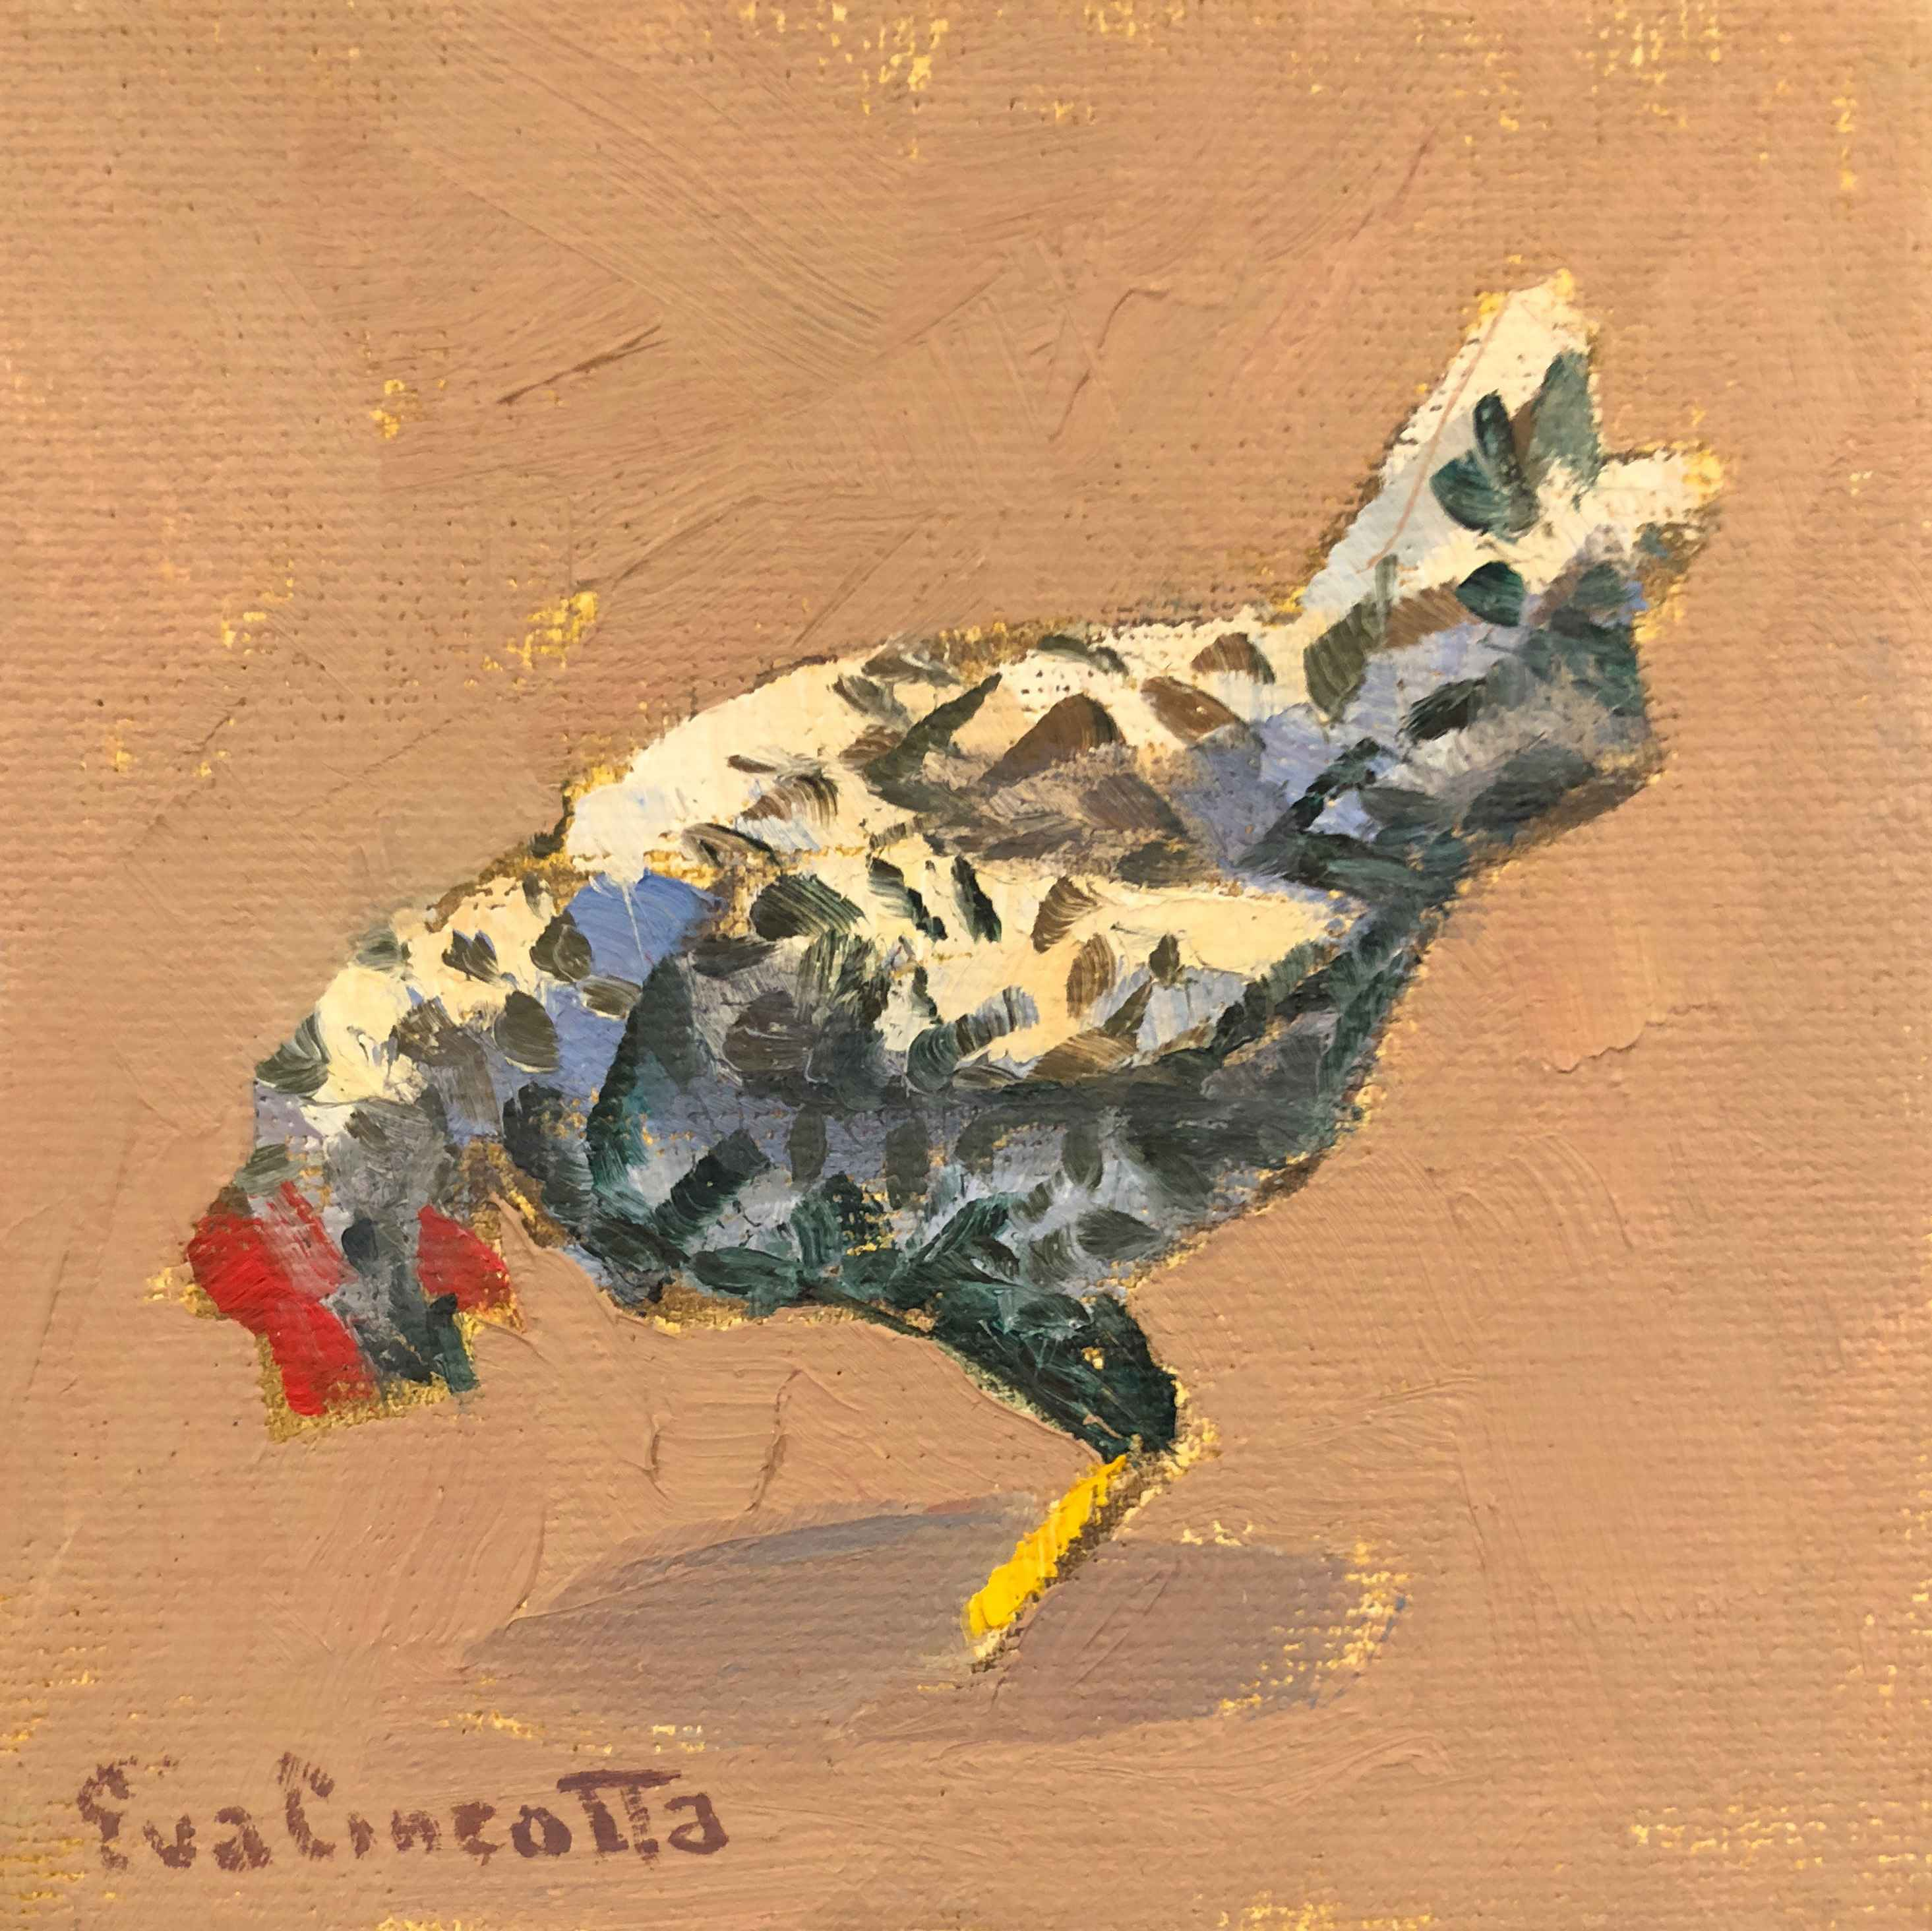 Speckled Feathers by  Eva Cincotta - Masterpiece Online